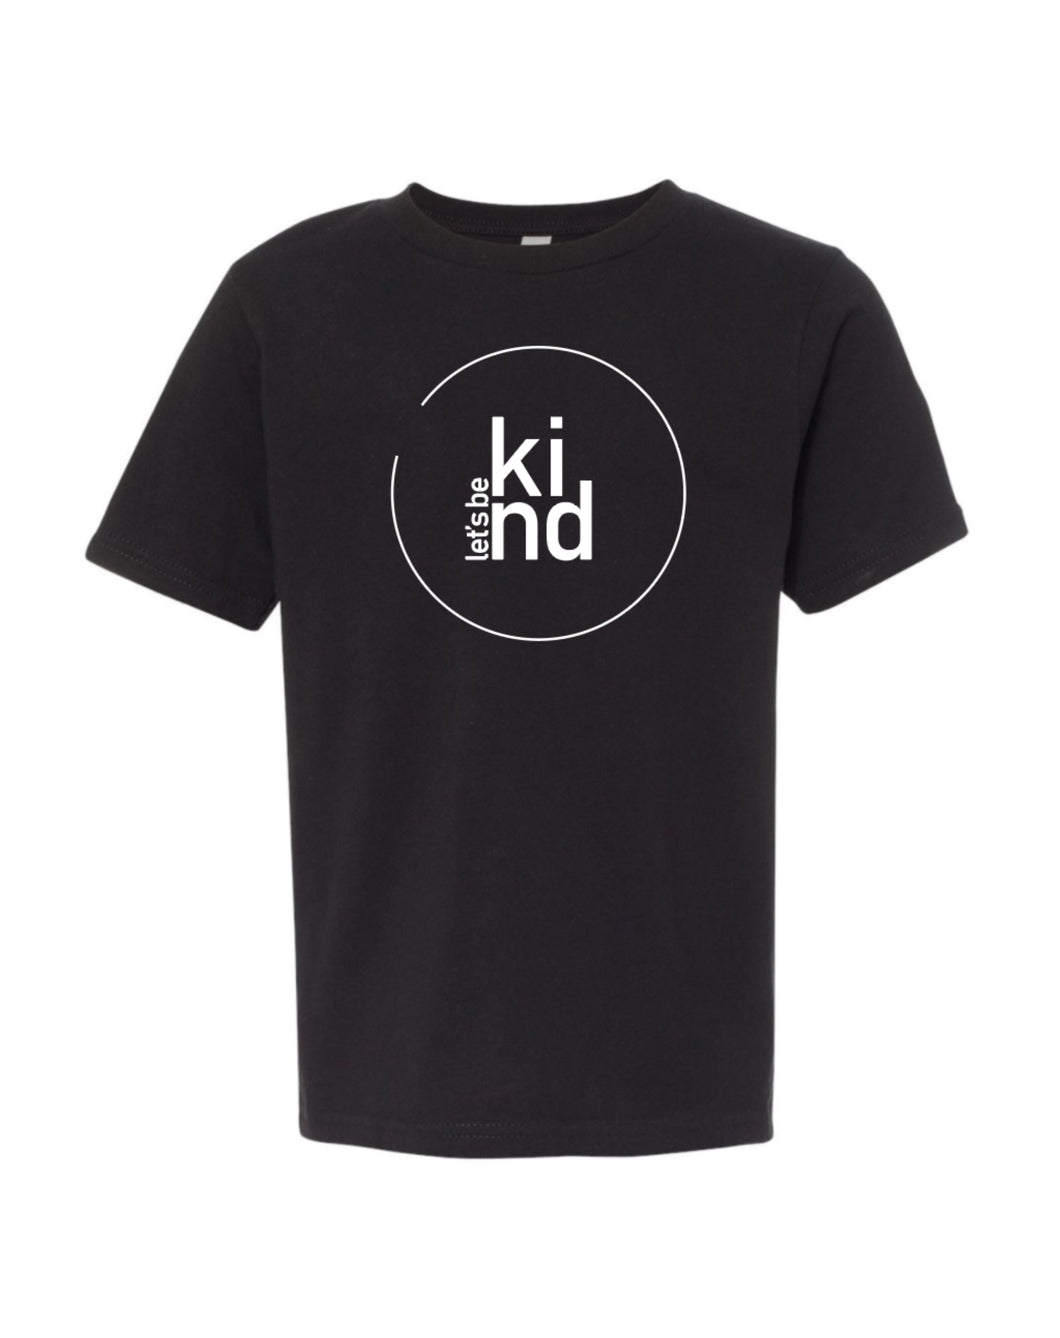 Original Let's Be Kind Tee (Youth)